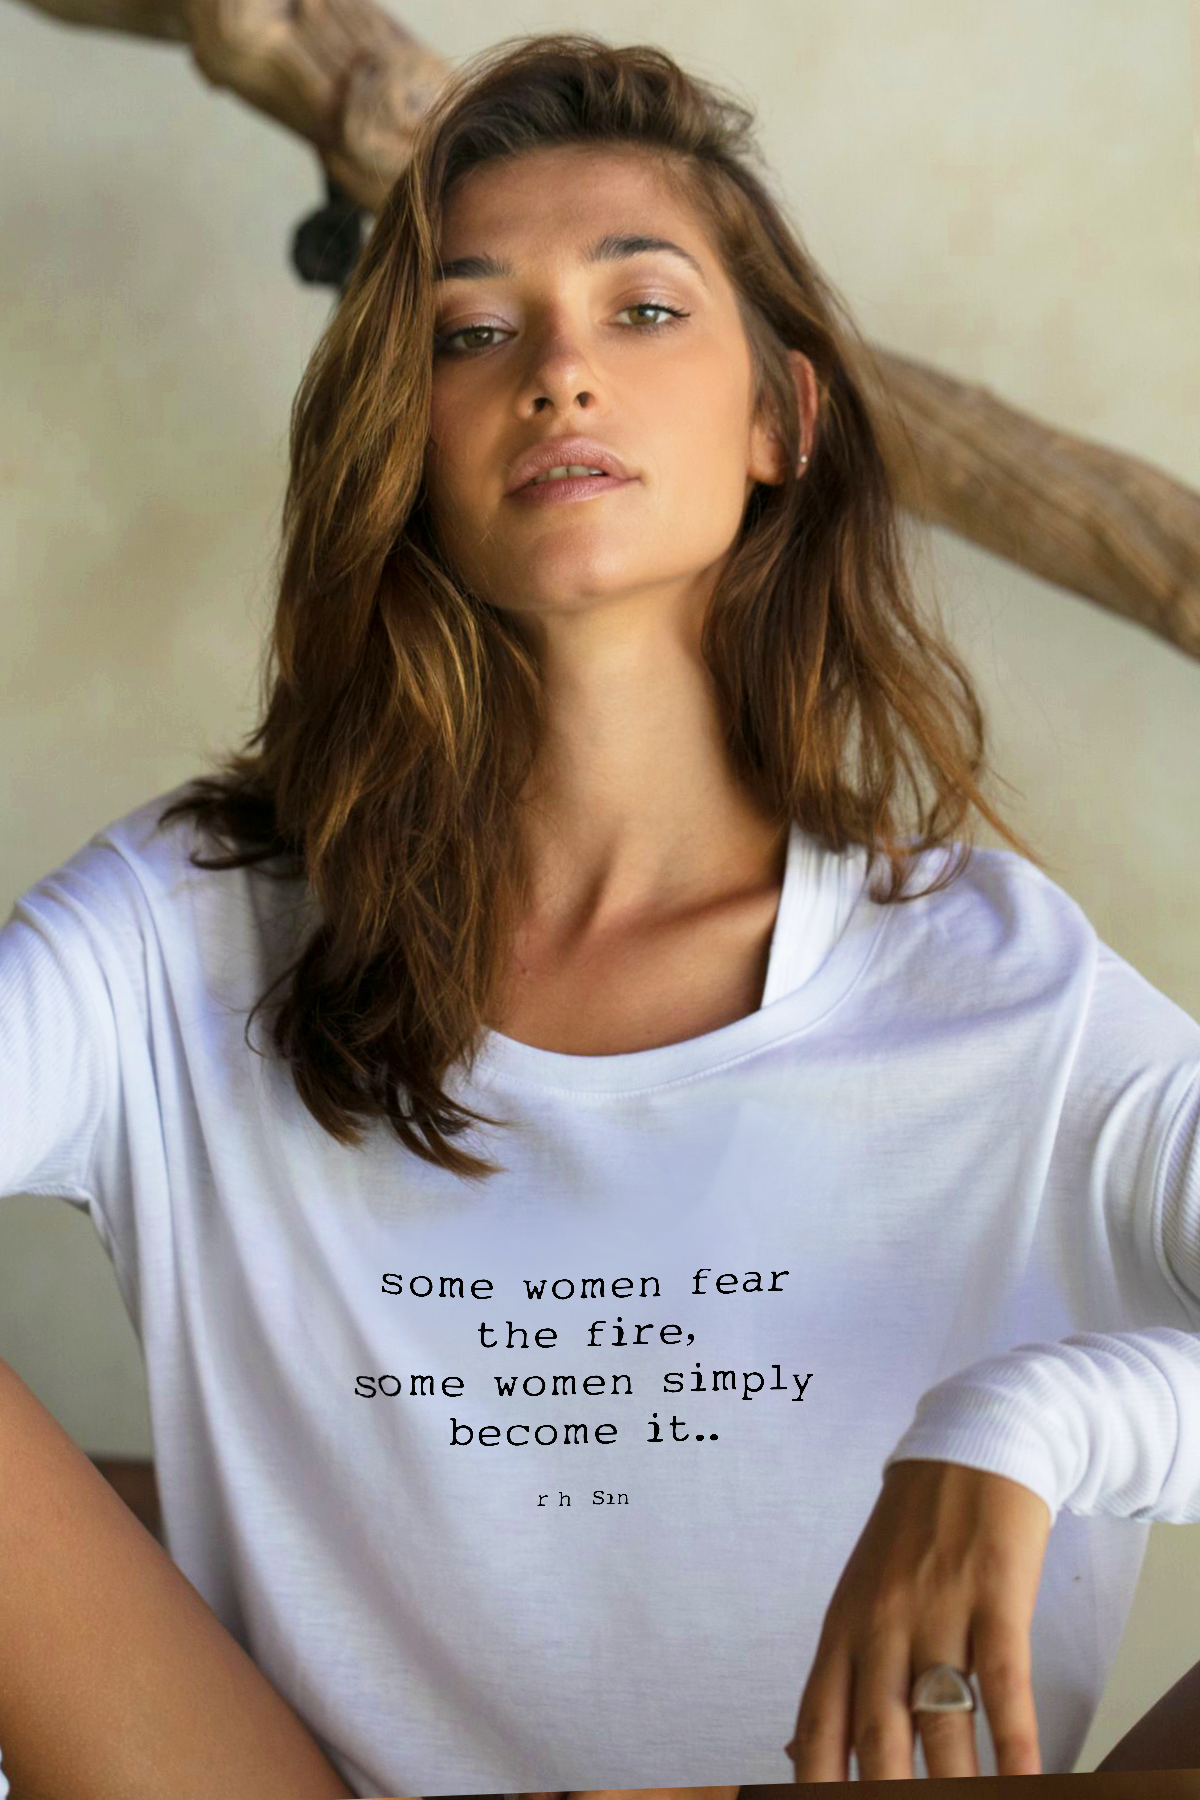 ec3db52860646 Some women fear the fire, some women simply become it.. R.h. Sin Shop this  Tee by clicking the link